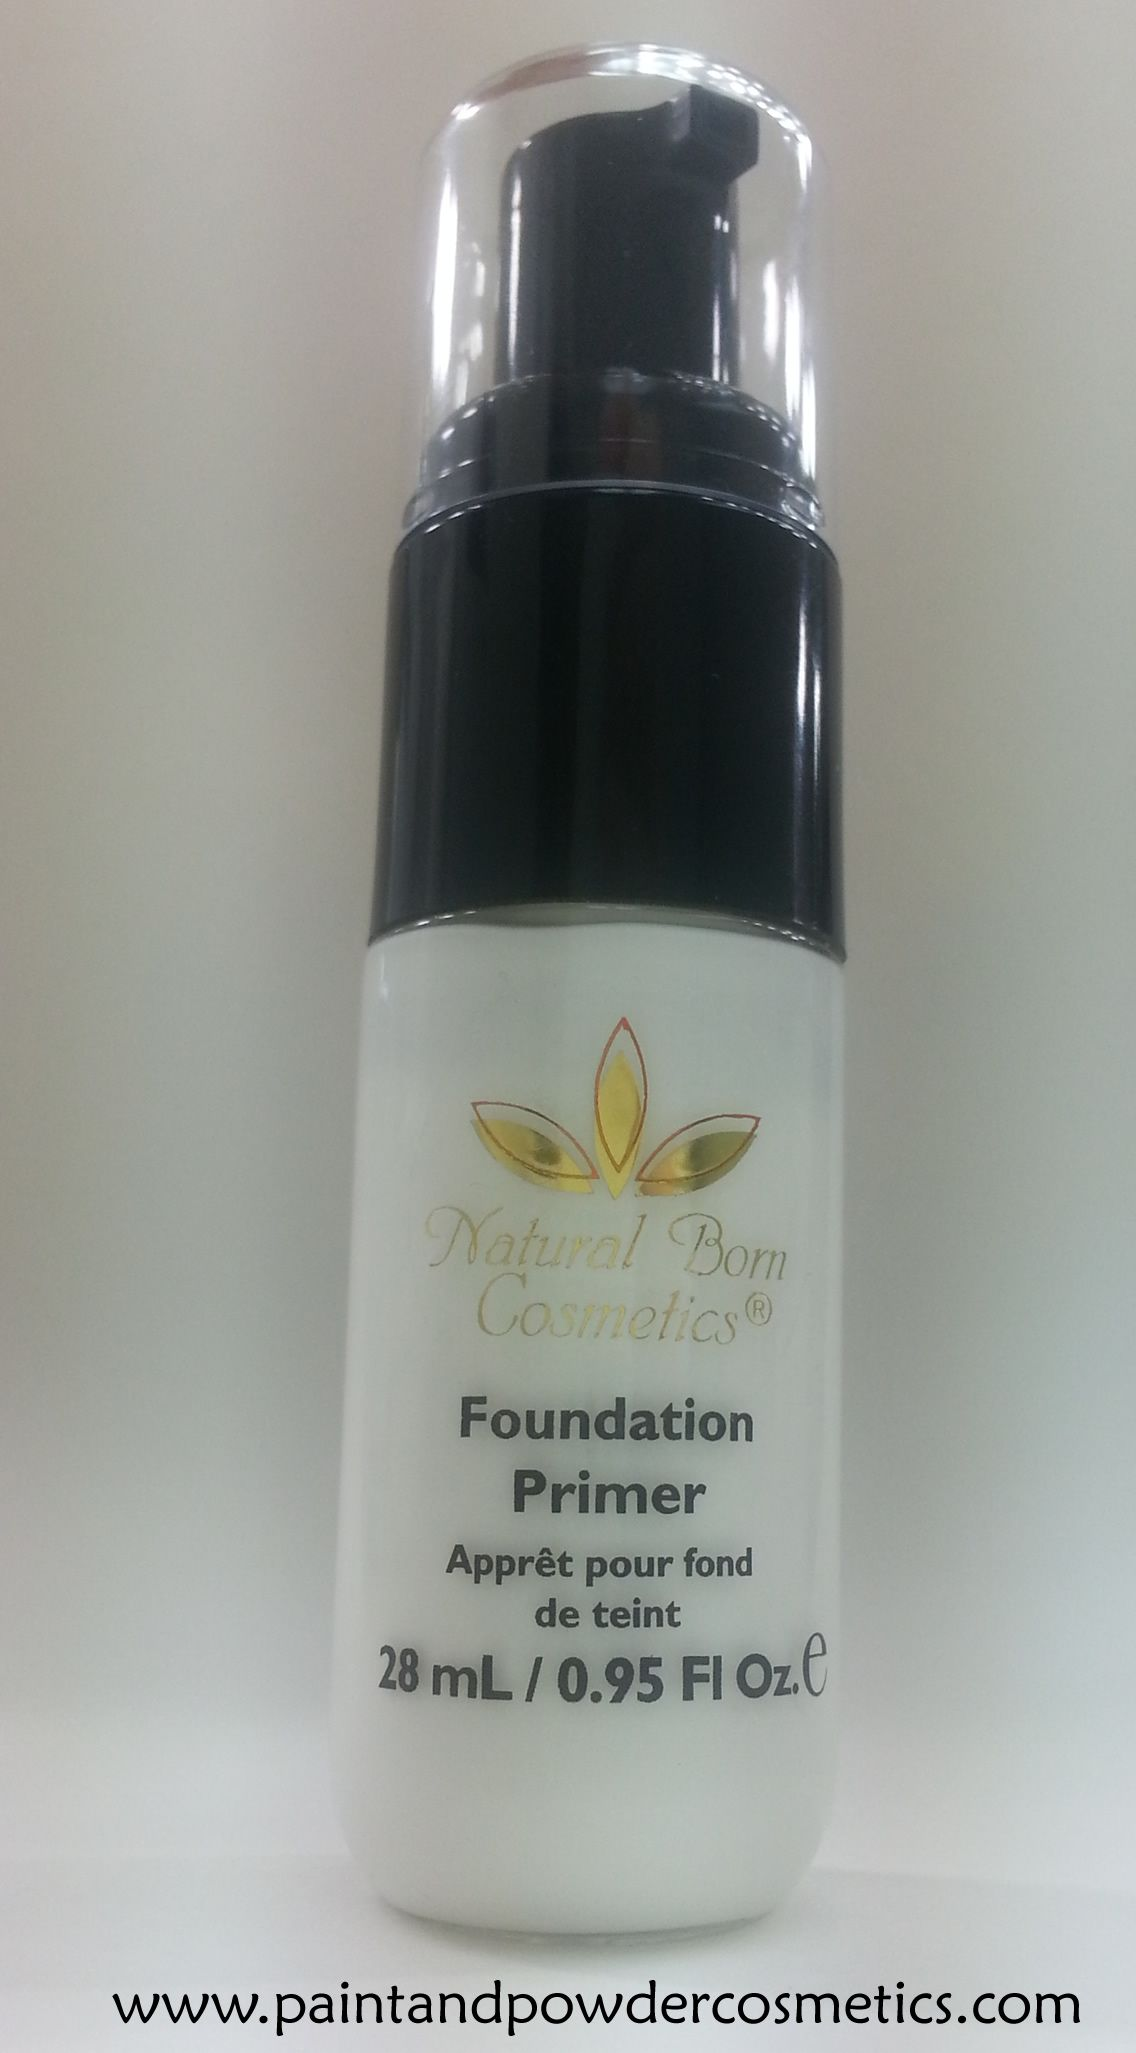 Natural Born Cosmetics Foundation Primer Foundation